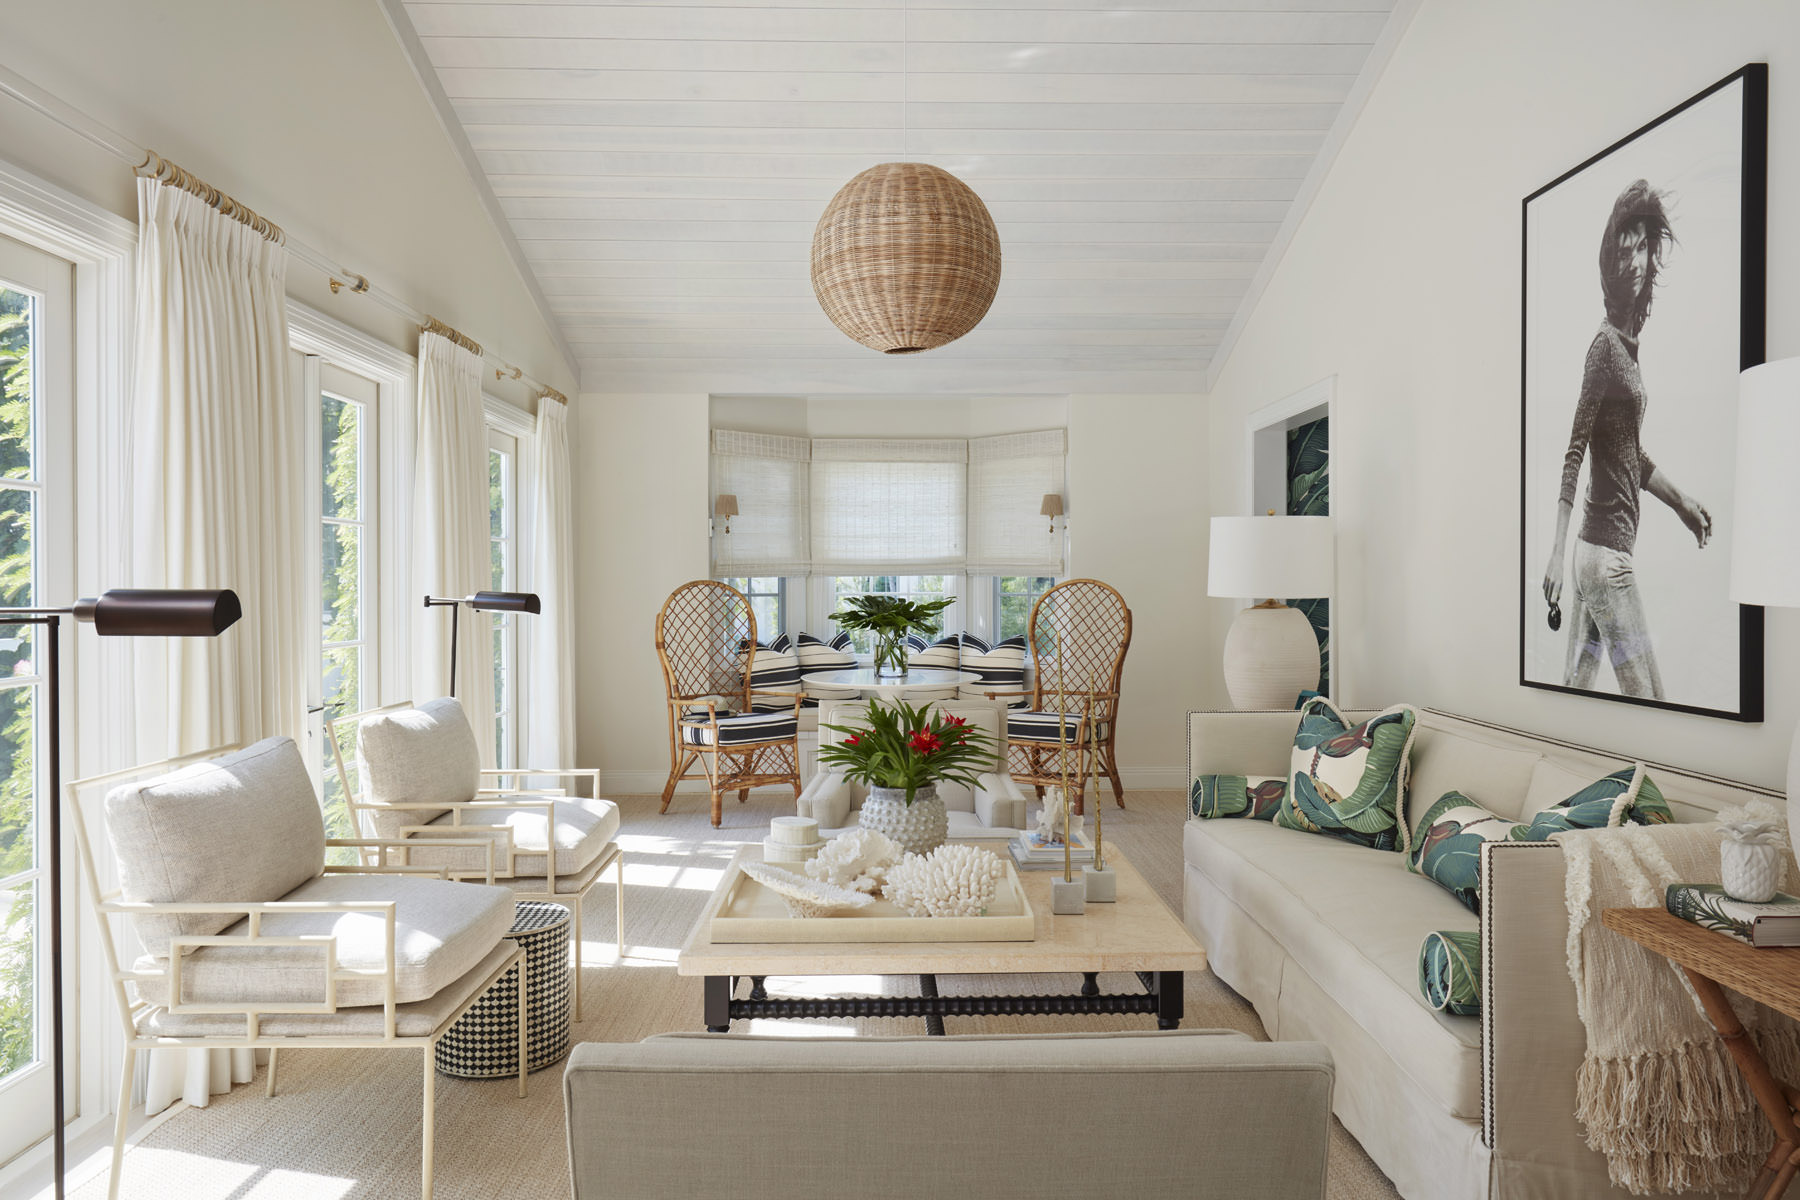 Tour the laid-back lush Palm Beach house that brilliantly blends minimalist neutrals with coastal flair--designed by Lindsey Lane